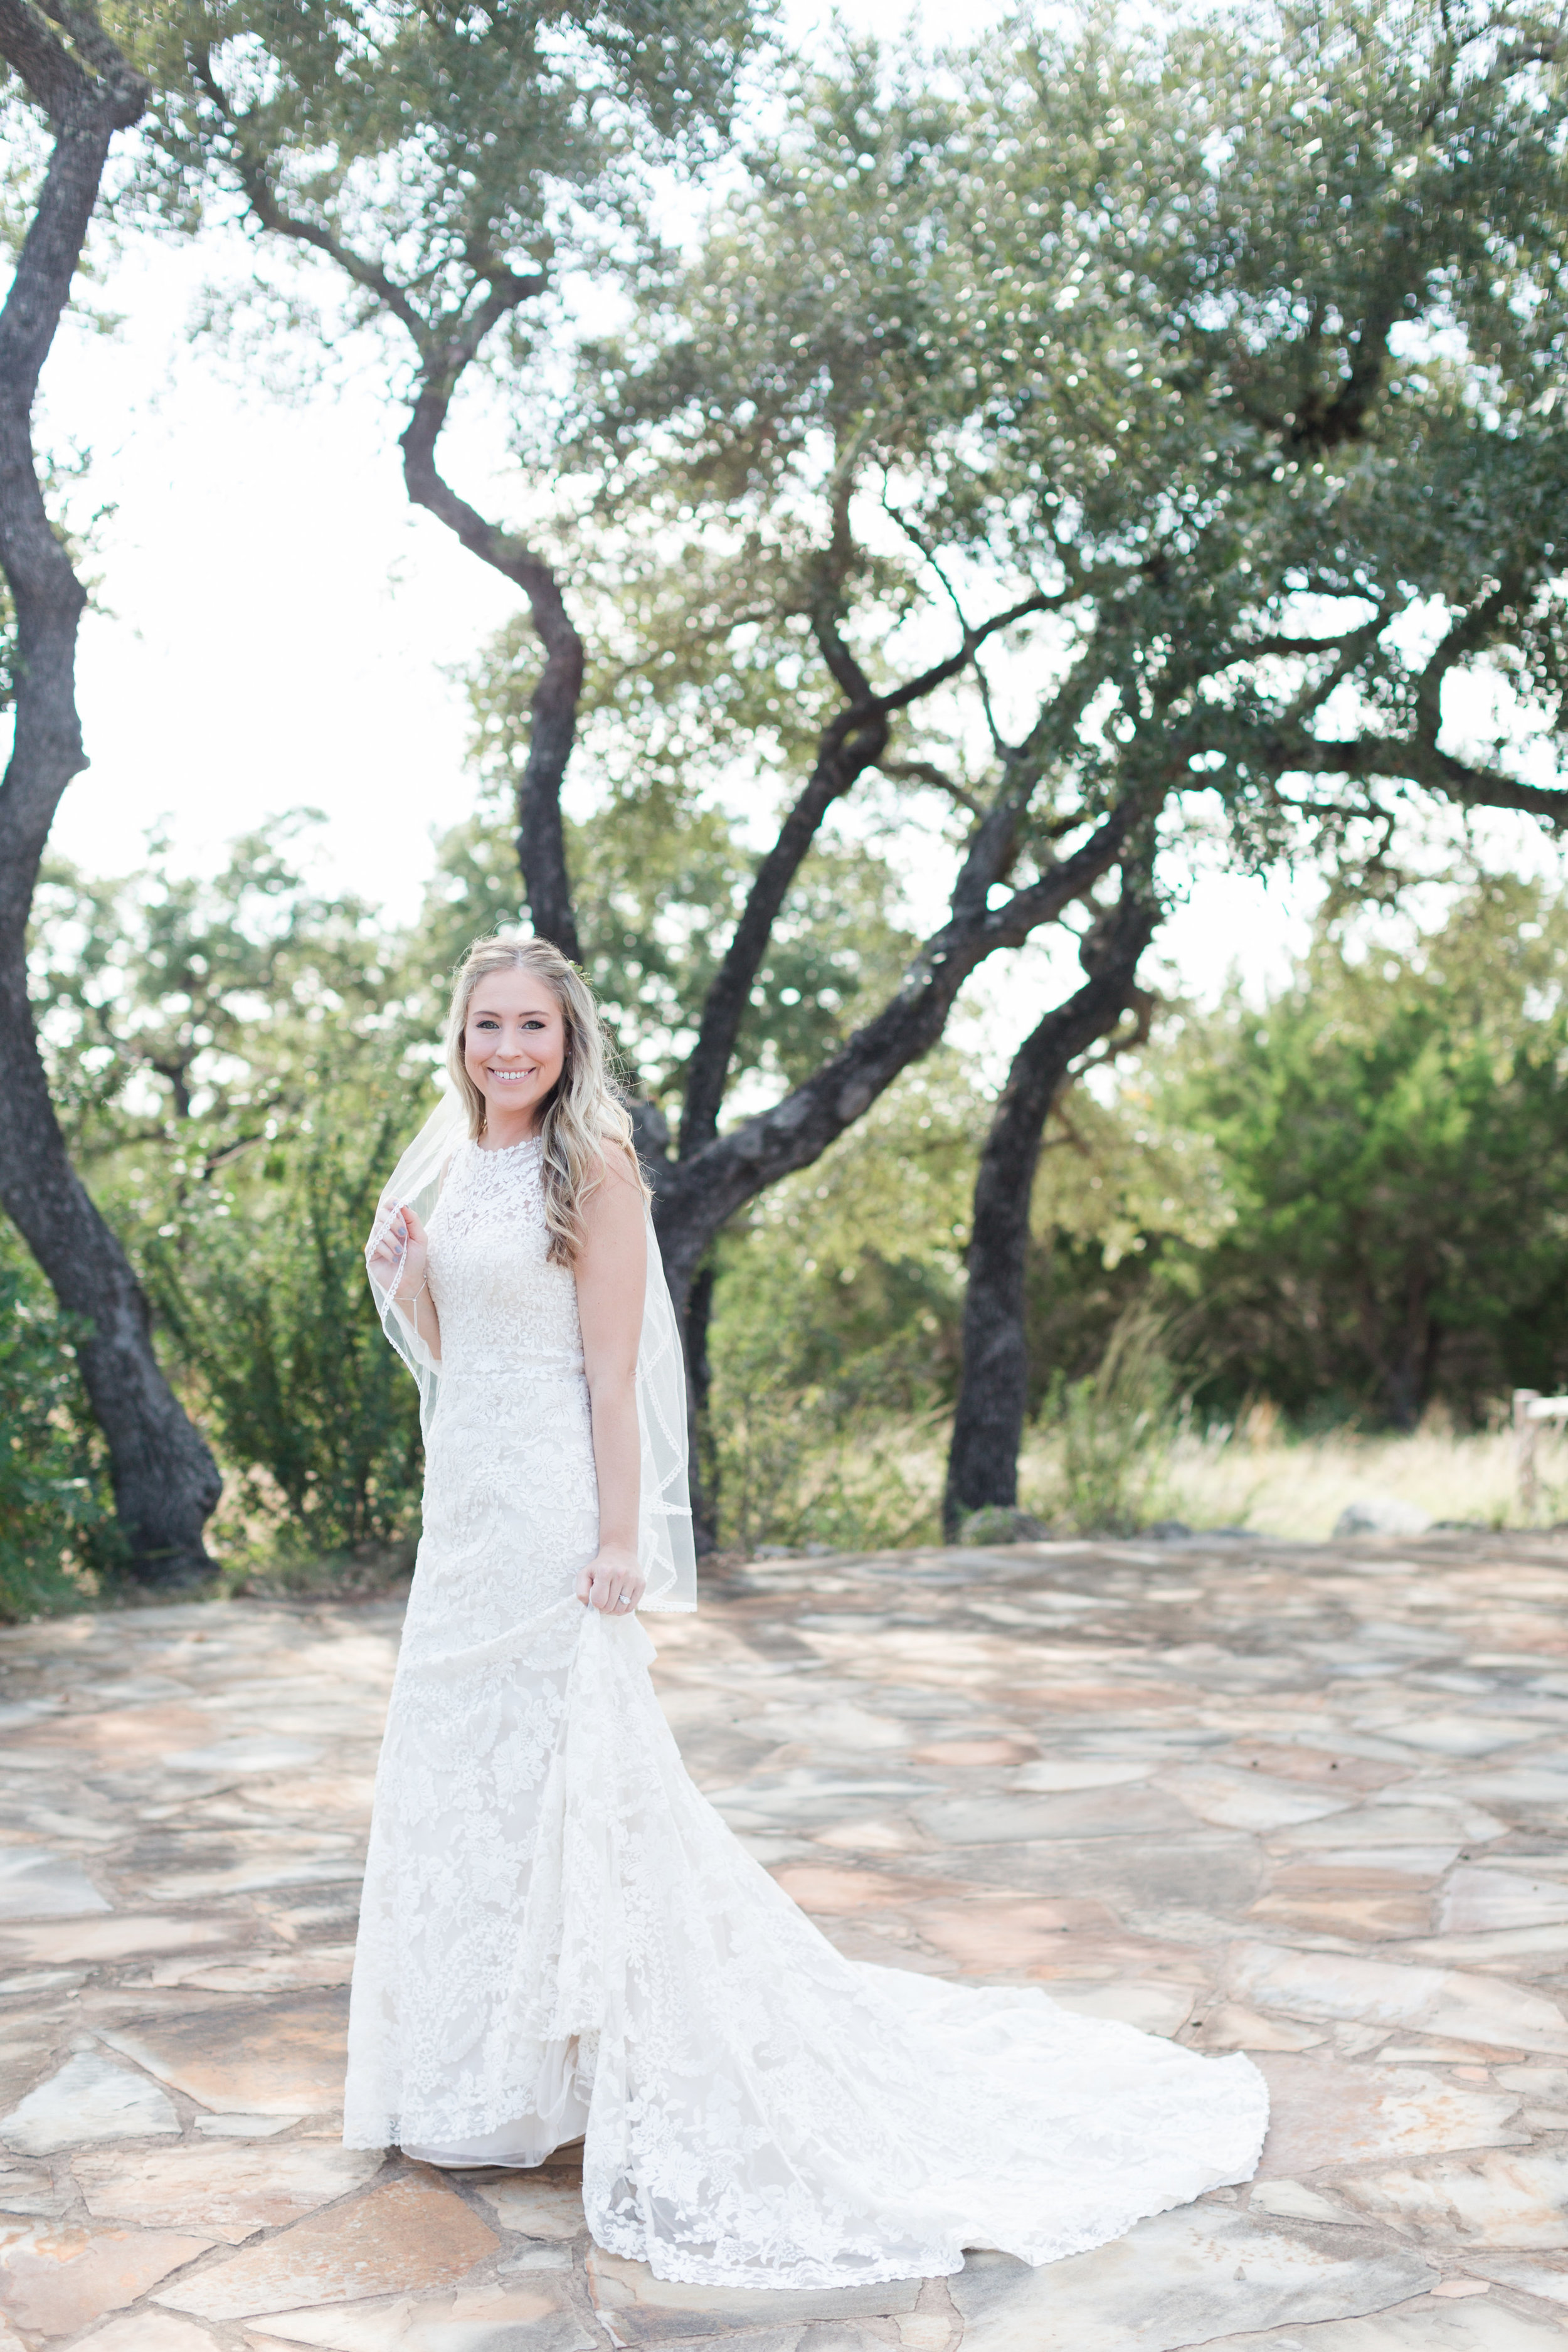 Lace Wedding Dresses - Heritage House Wedding - Georgetown, Texas Wedding Venue